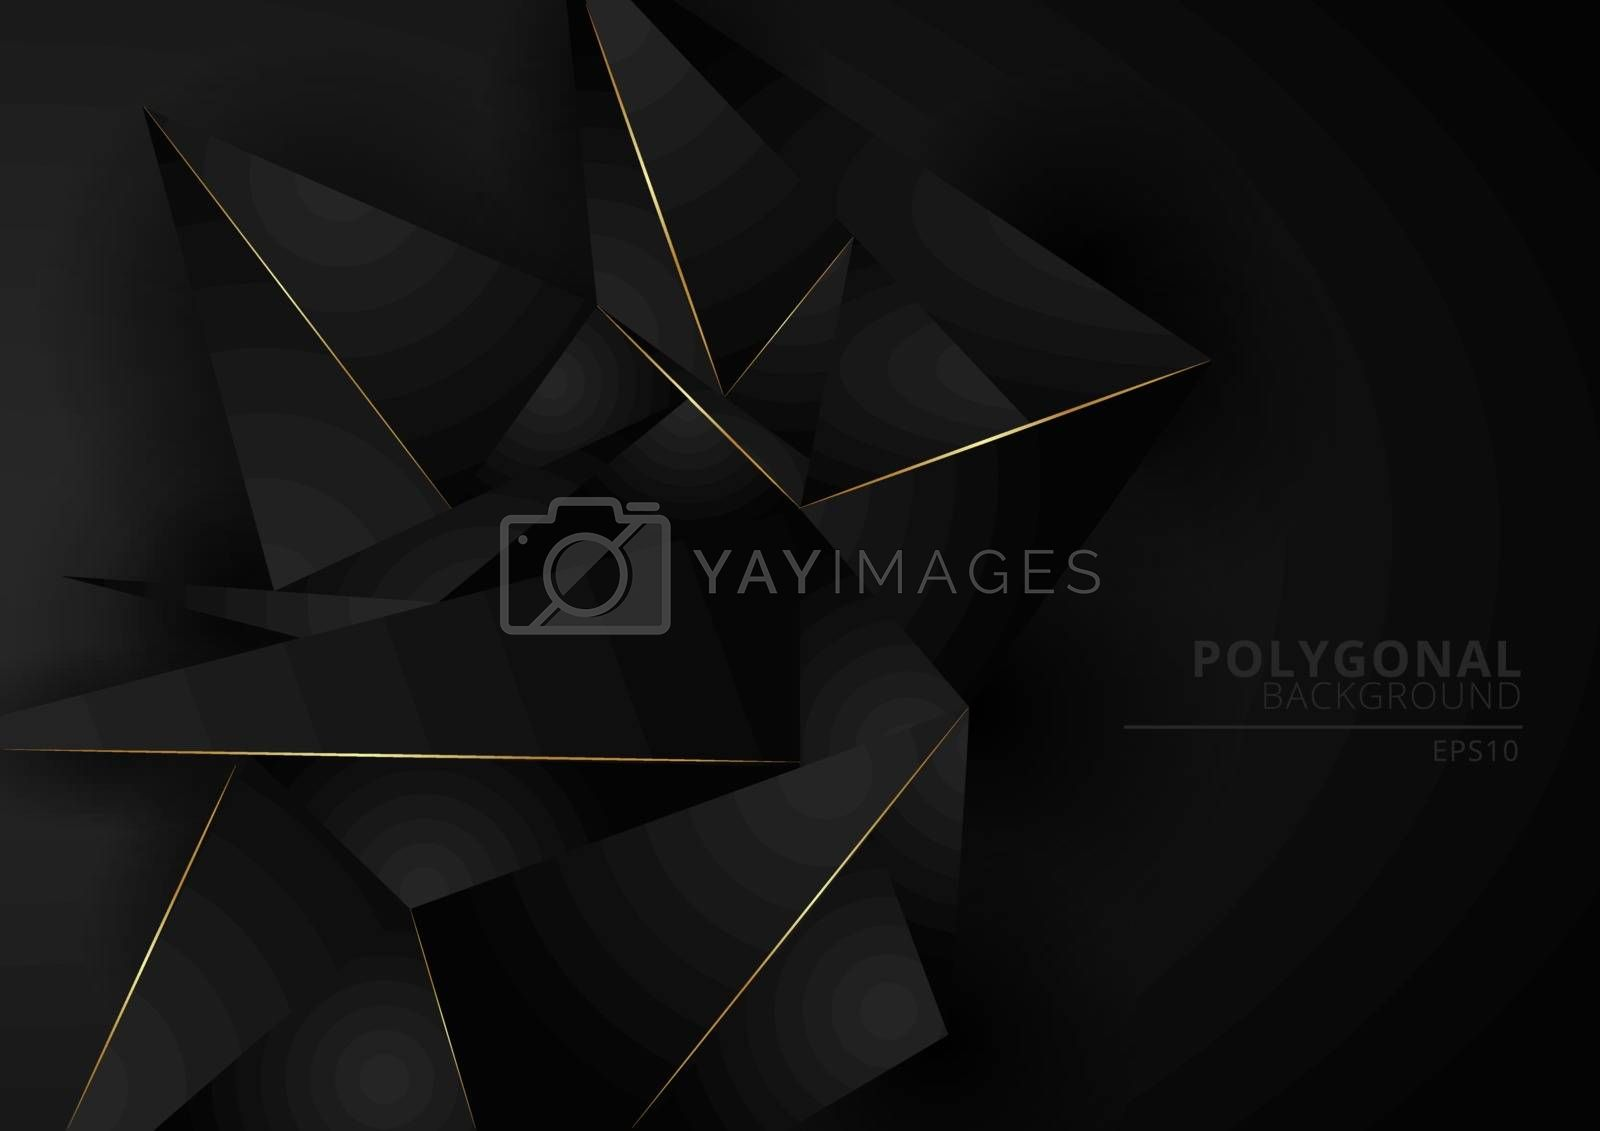 Abstract black geometric polygonal form background with golden line. Luxury style. Low poly triangles pattern and gold stripes. Vector illustration